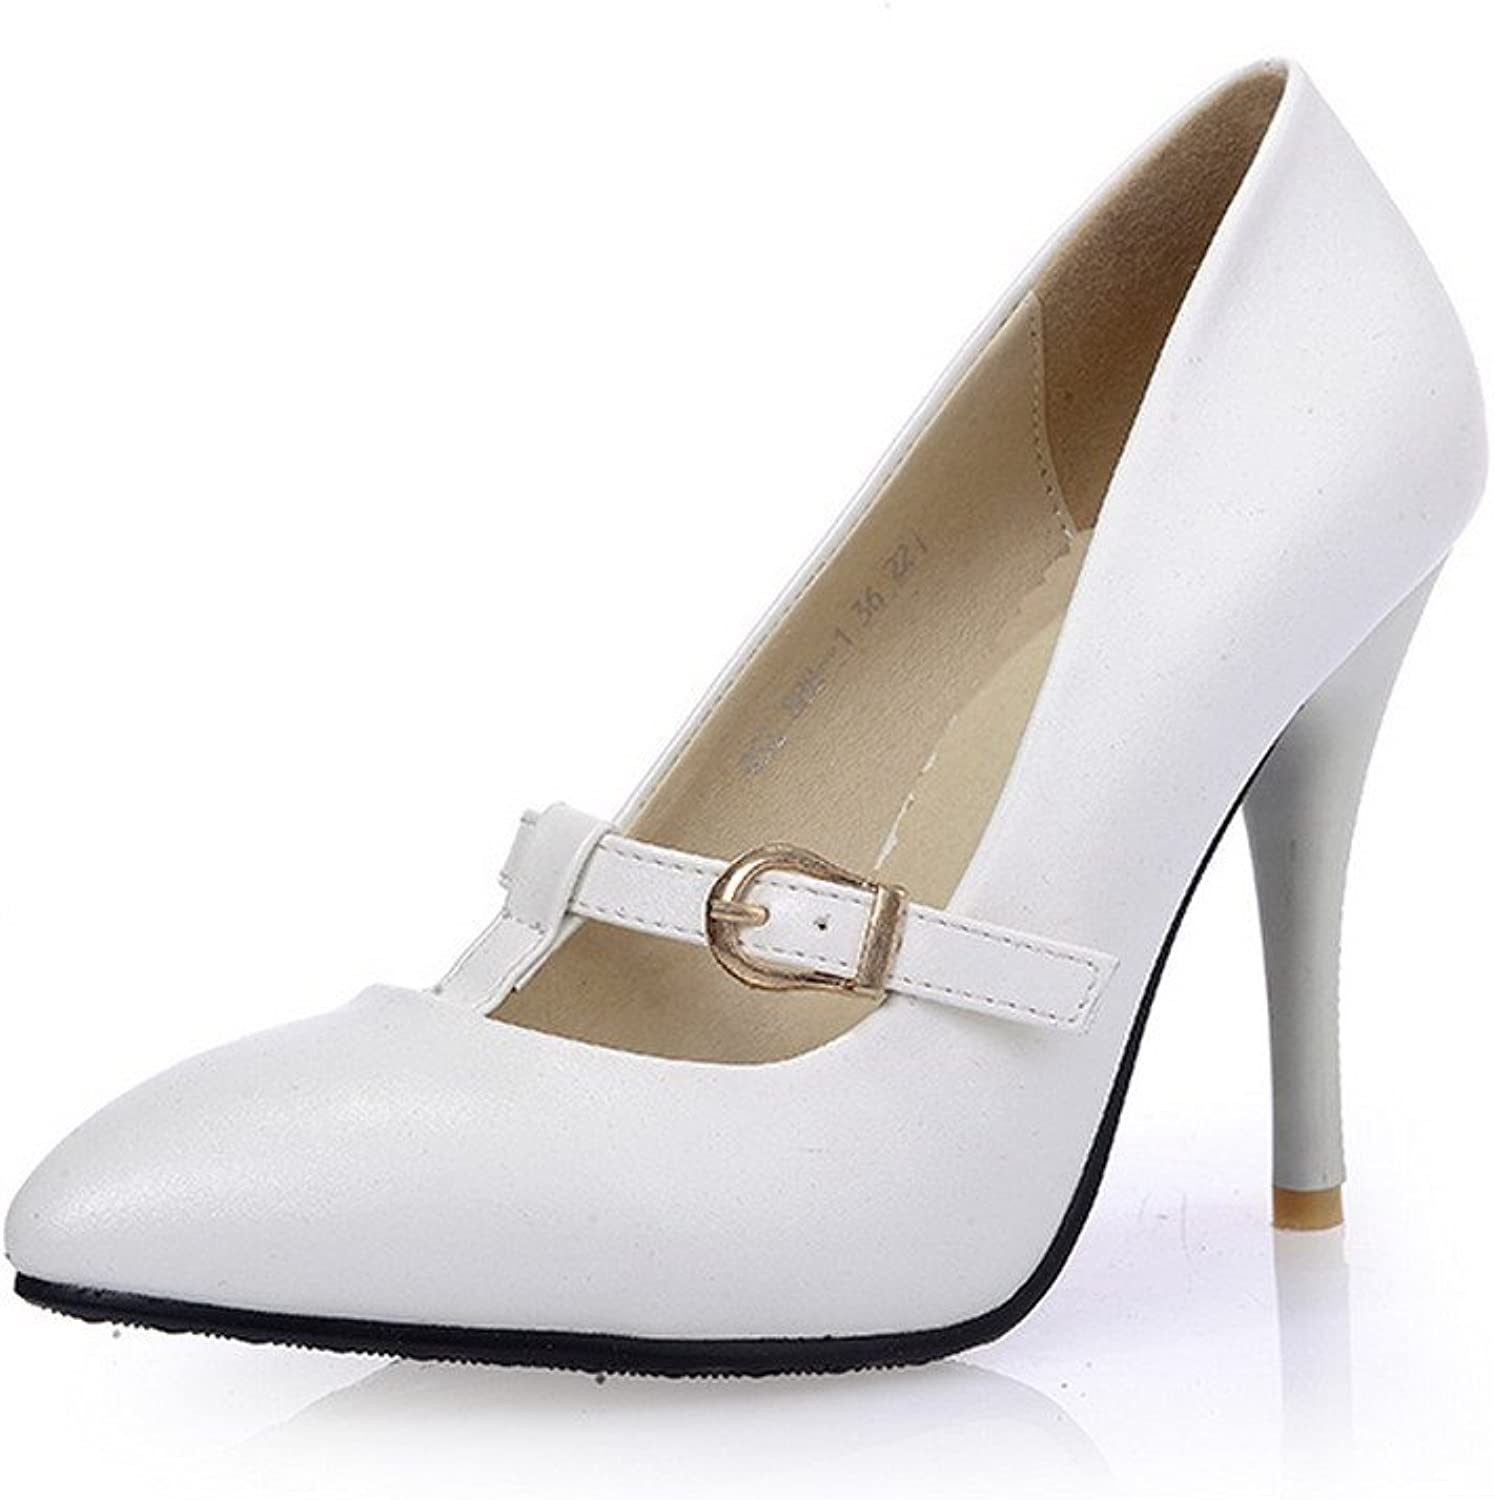 AmoonyFashion Women's Closed-Toe Pointed-Toe High-Heels Pumps-shoes with Winkle Pinker and Buckle